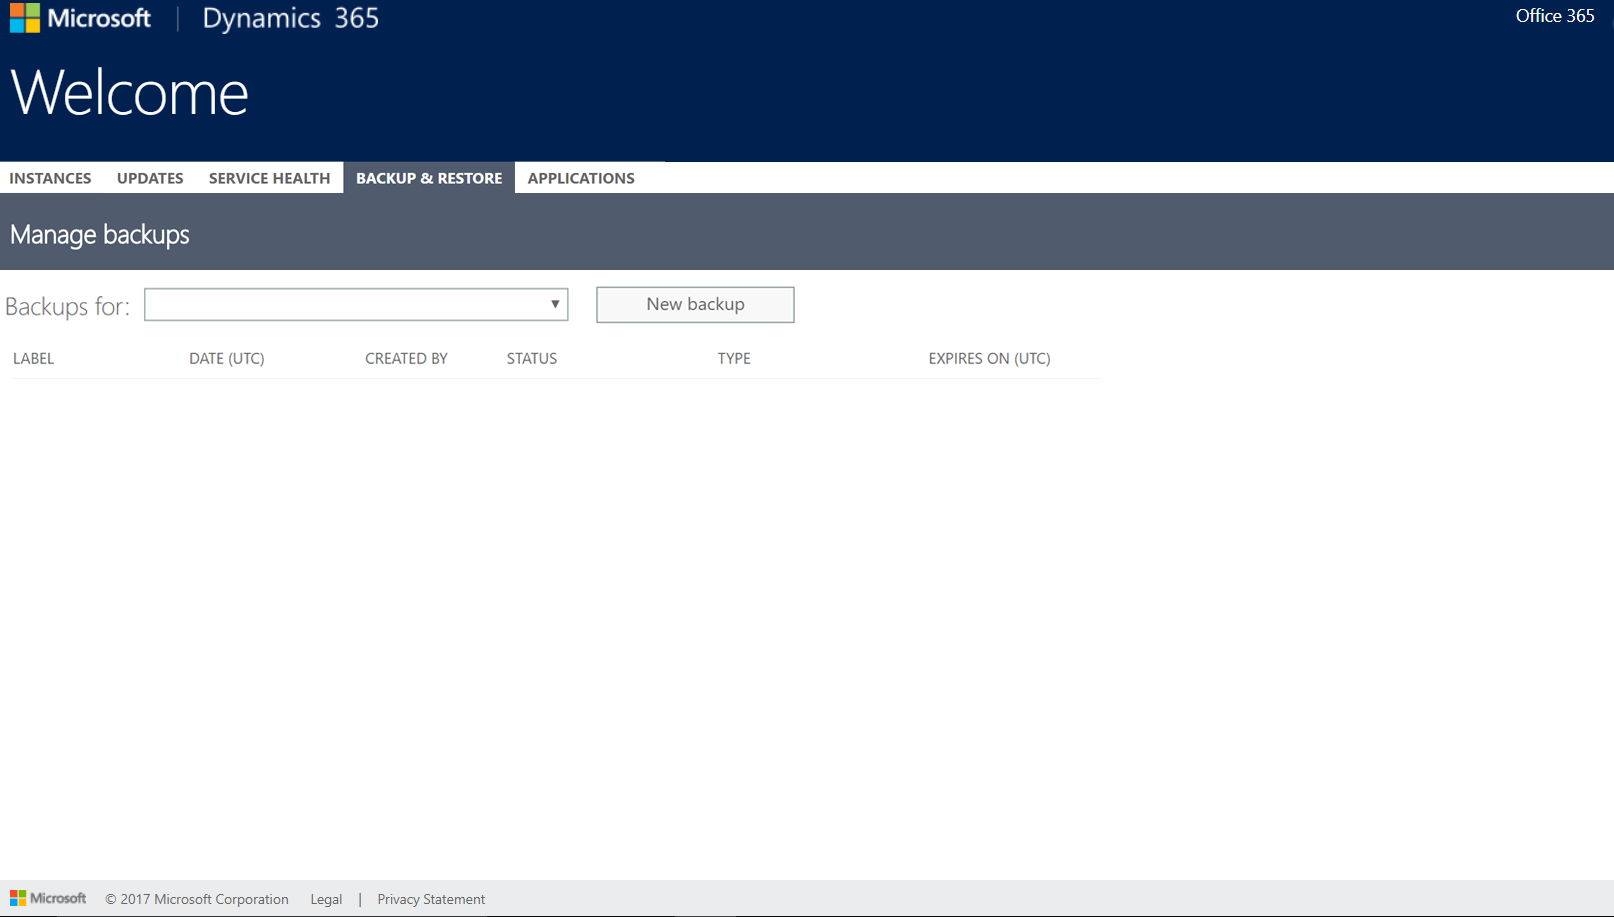 Missing instances in Backup and Restore tab in Office Portal